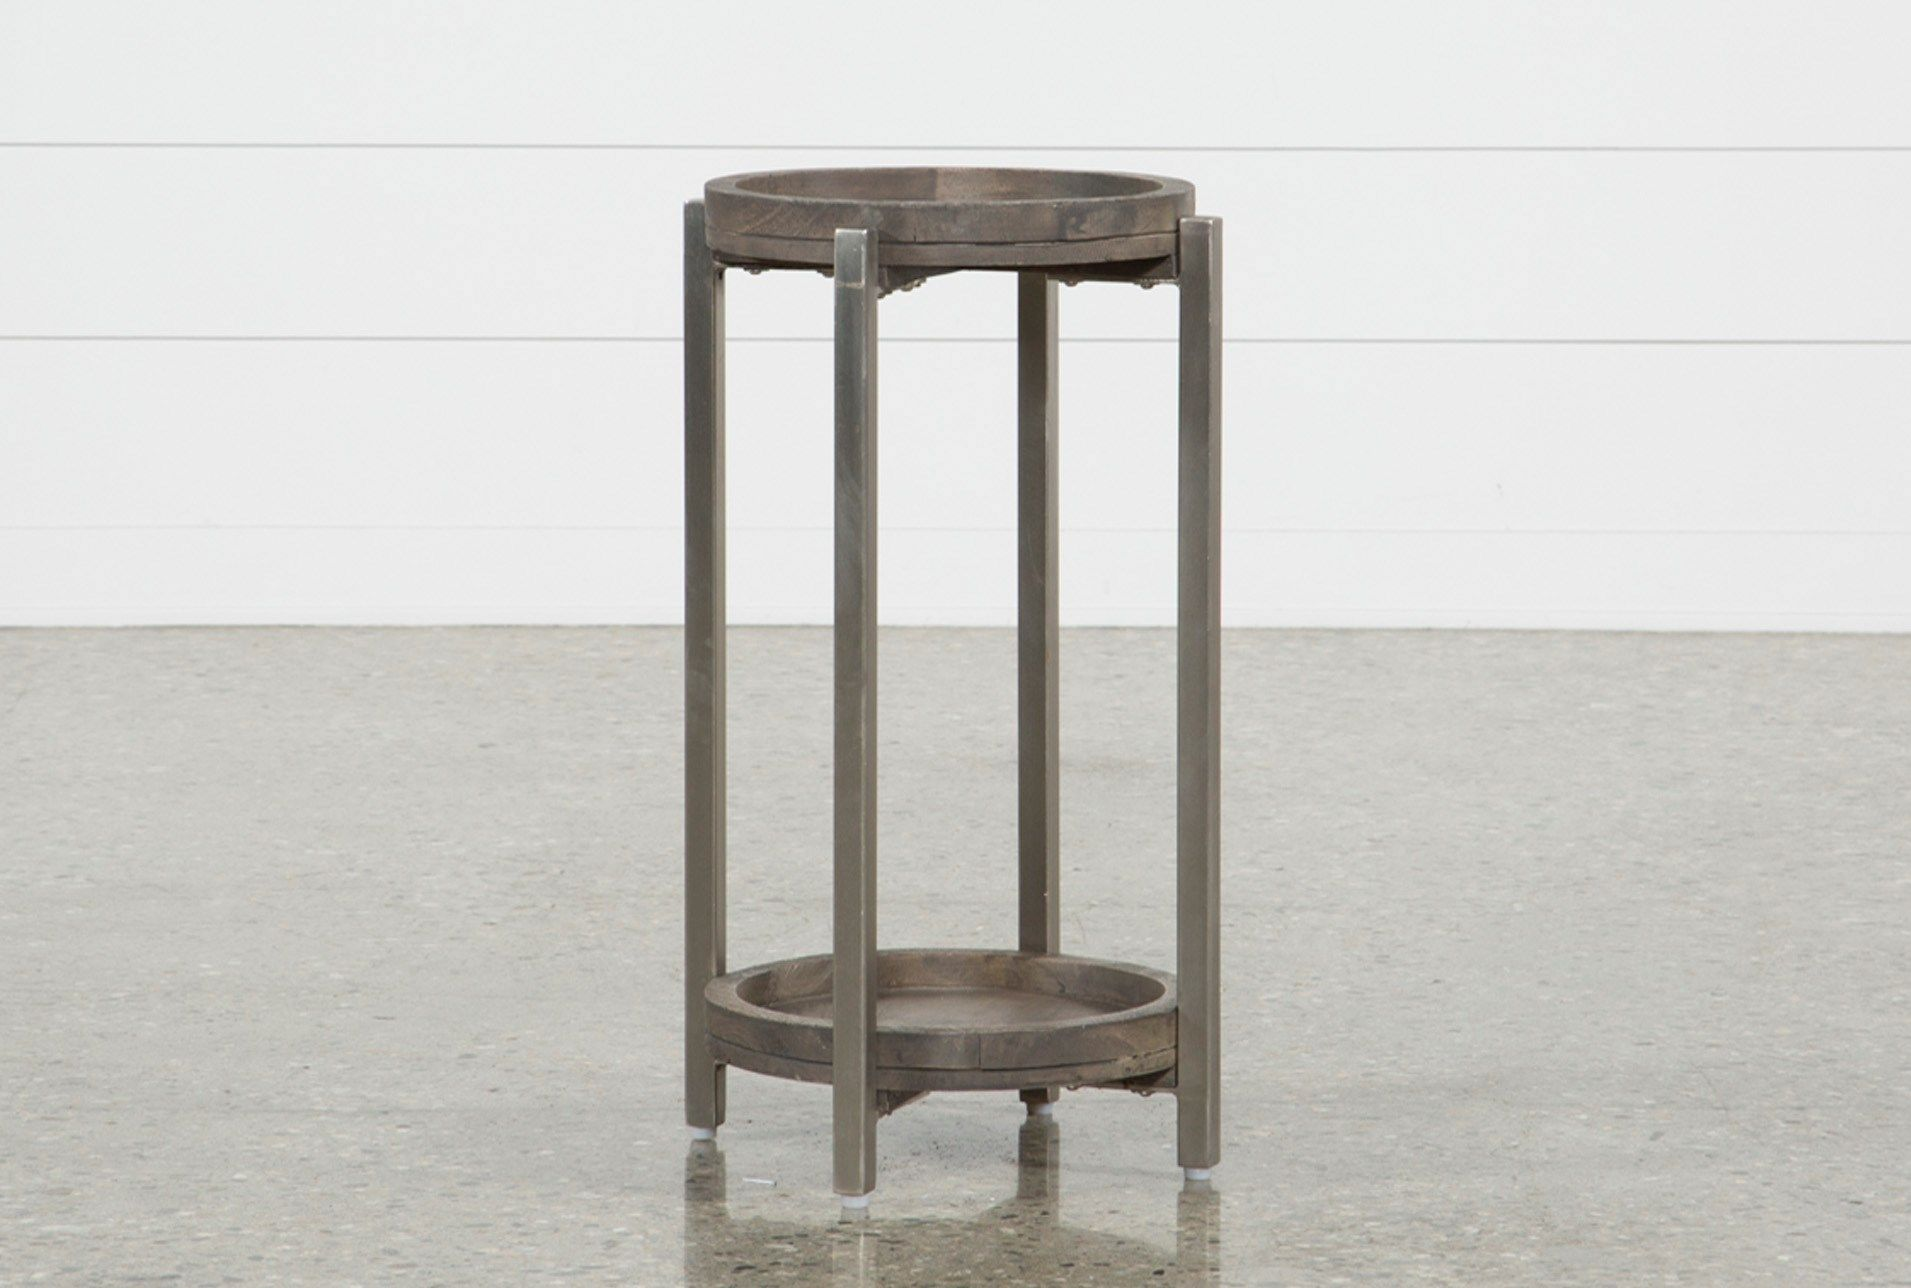 swell round accent table brown end tables rounding acacia wood jinan true its name this just sleek nickel finished iron legs stand sturdy while drift oil brings natural small